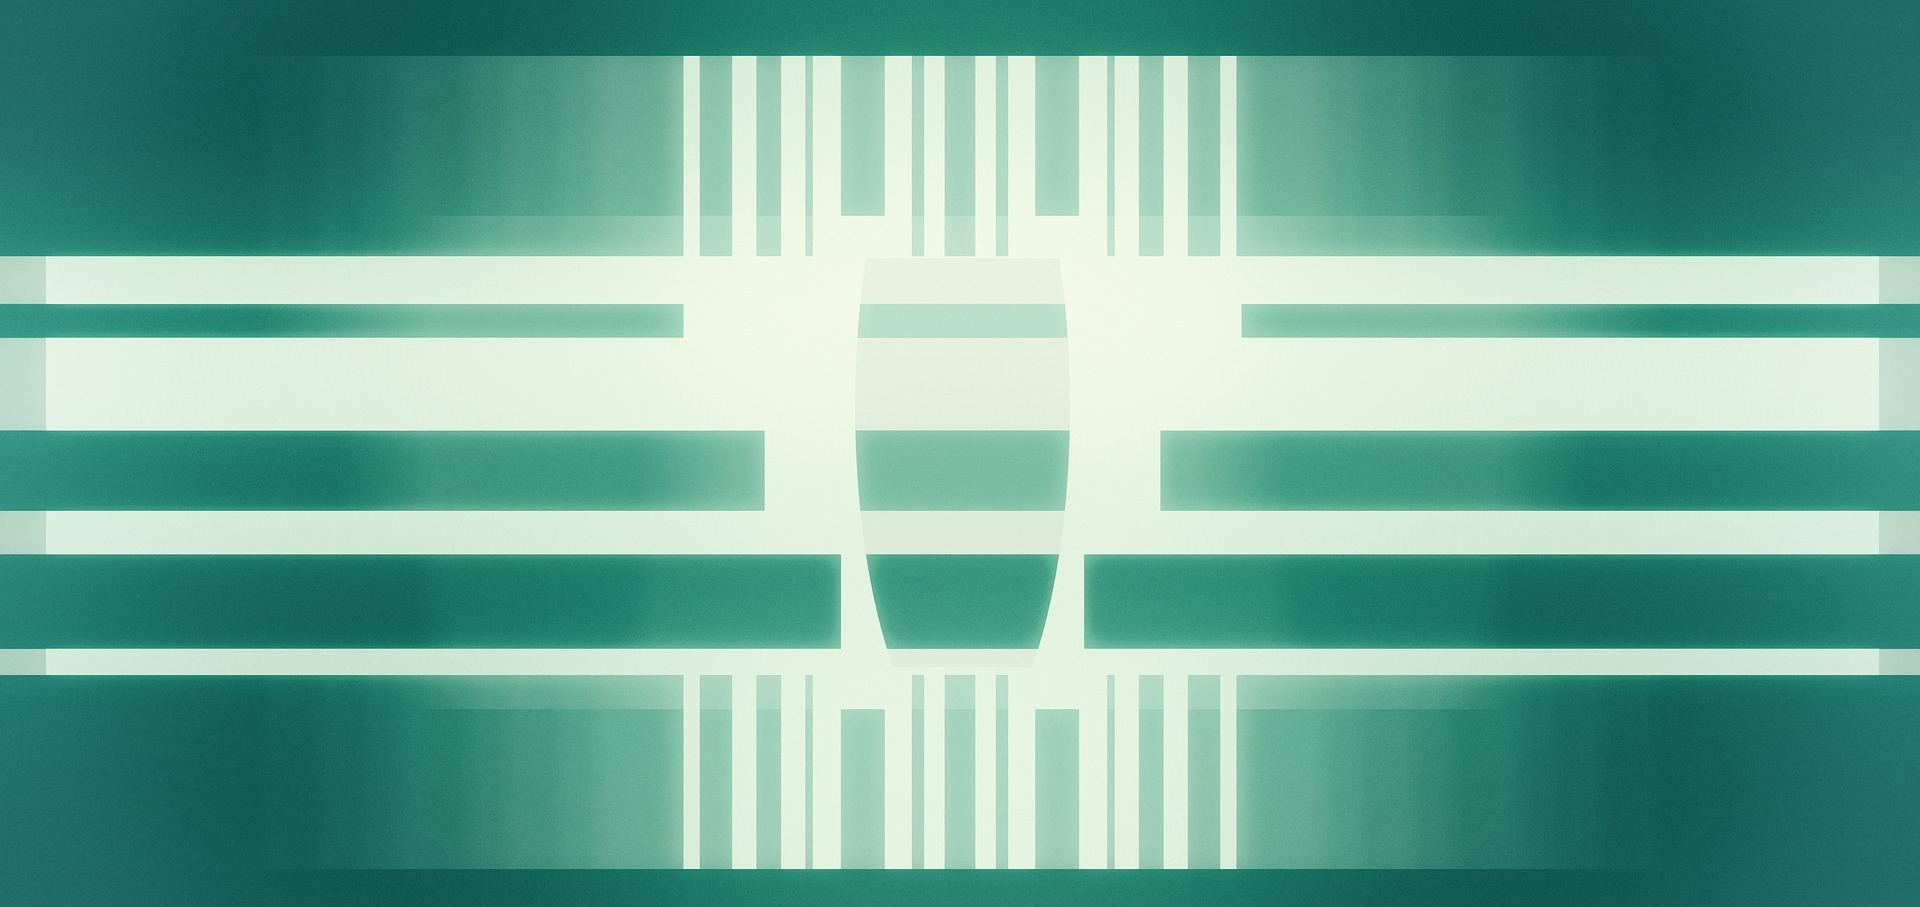 Wallpaper Stripes, design, pattern, abstract